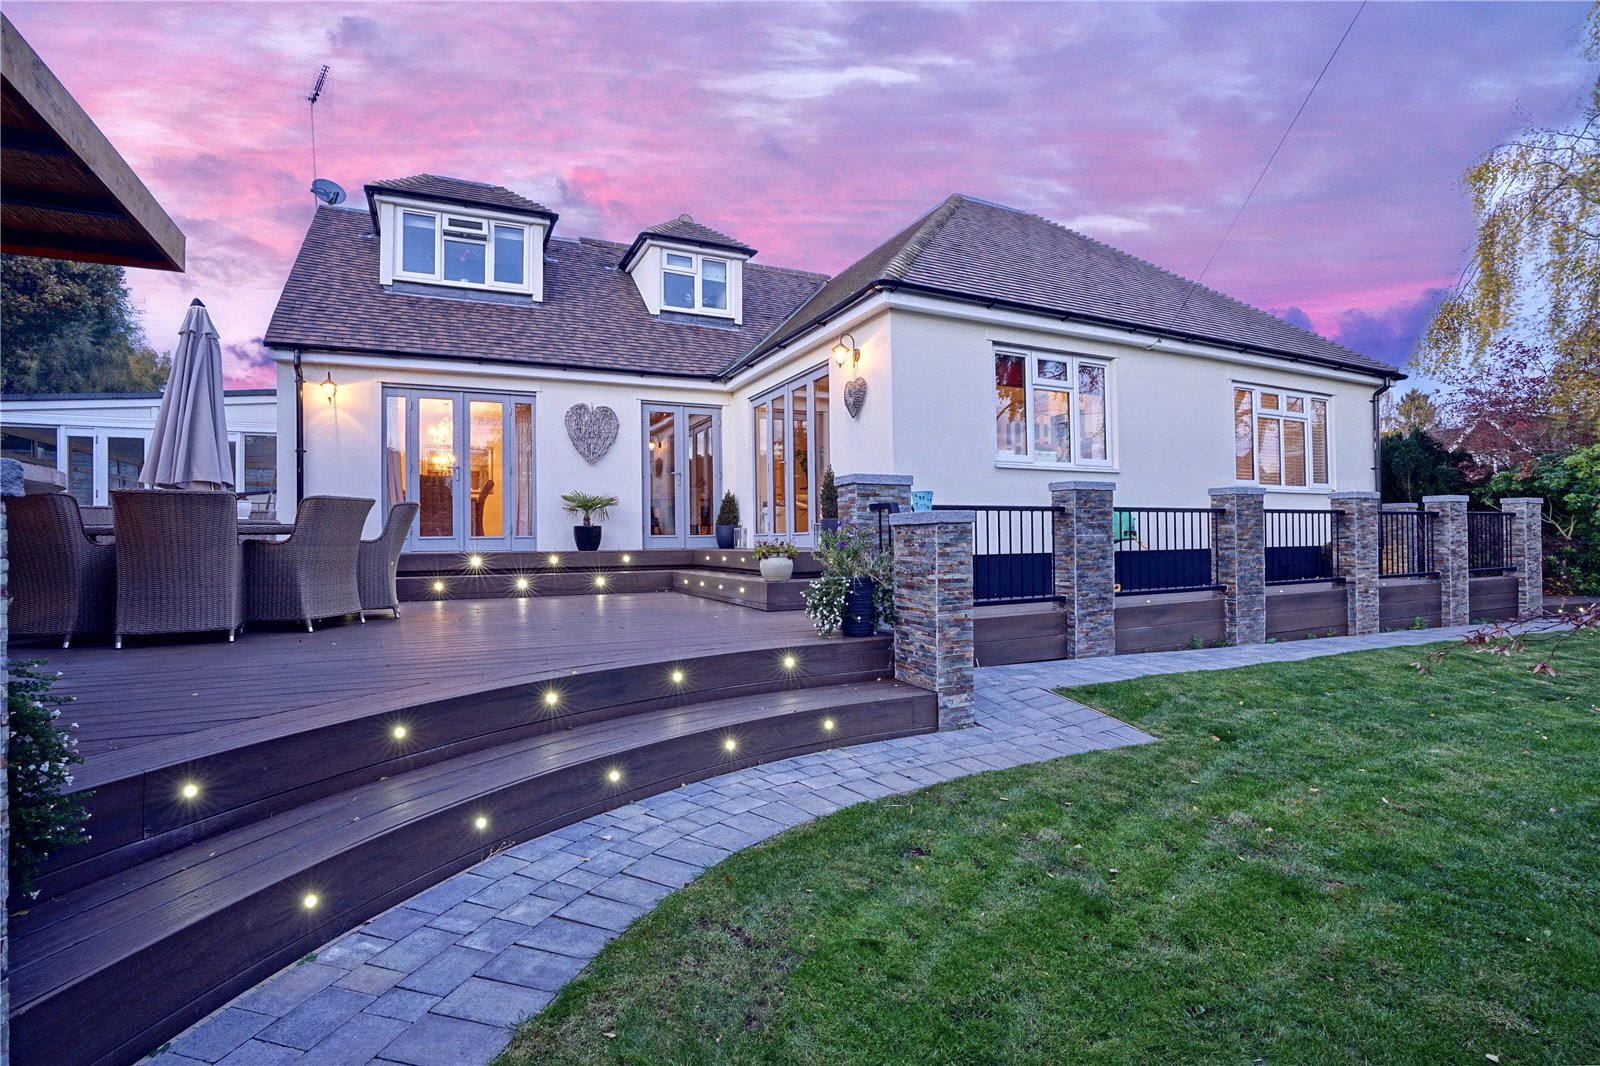 4 bed house for sale in Welwyn, AL6 0QG 28